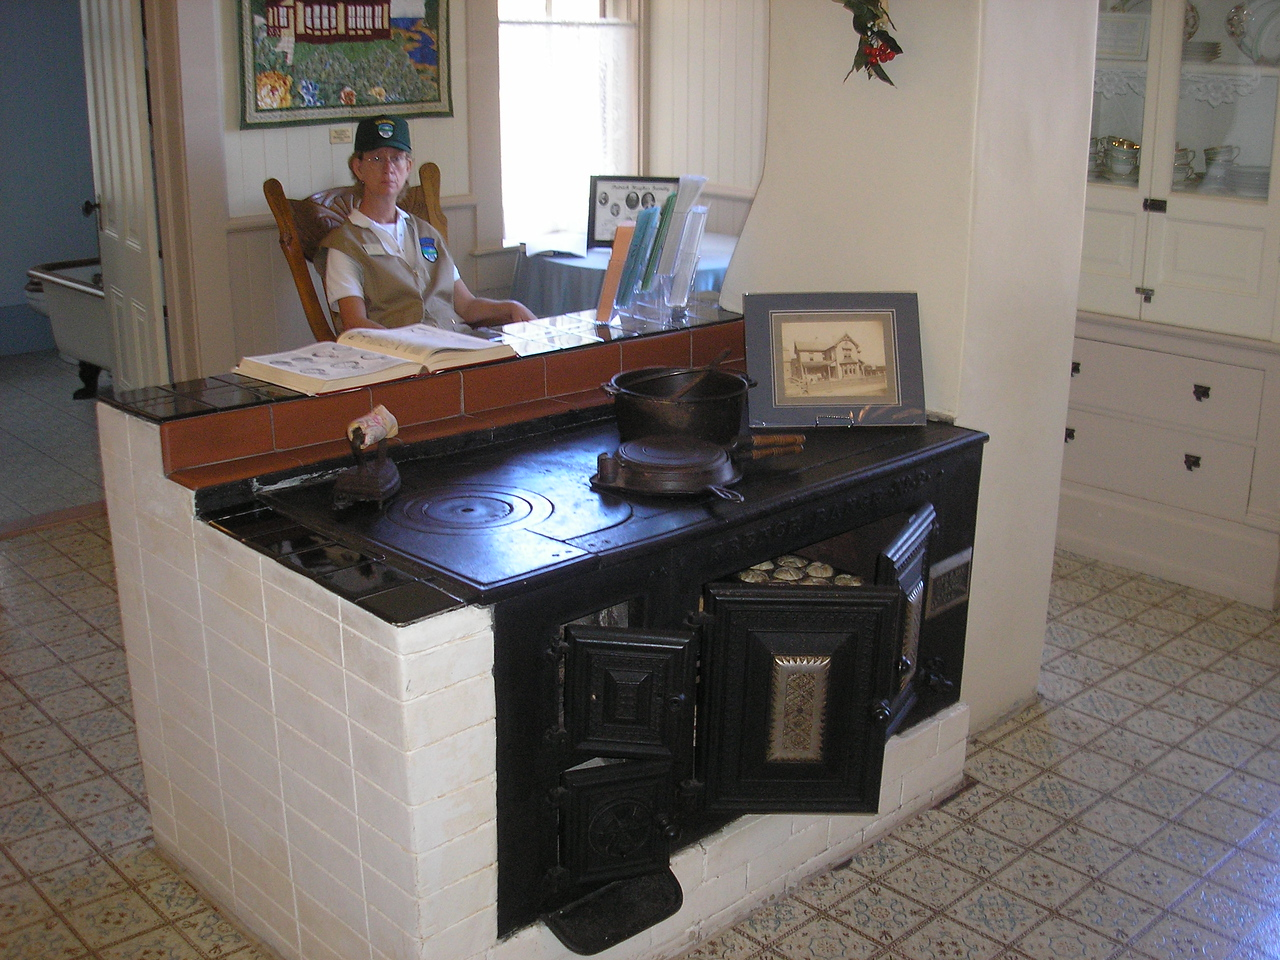 The center piece of the kitchen in the Hughes House is the wood burning cast iron stove.  It was used to heat the house, cook the meals and had coils bilt in it to heat water for the indoor plumbing fixtures.